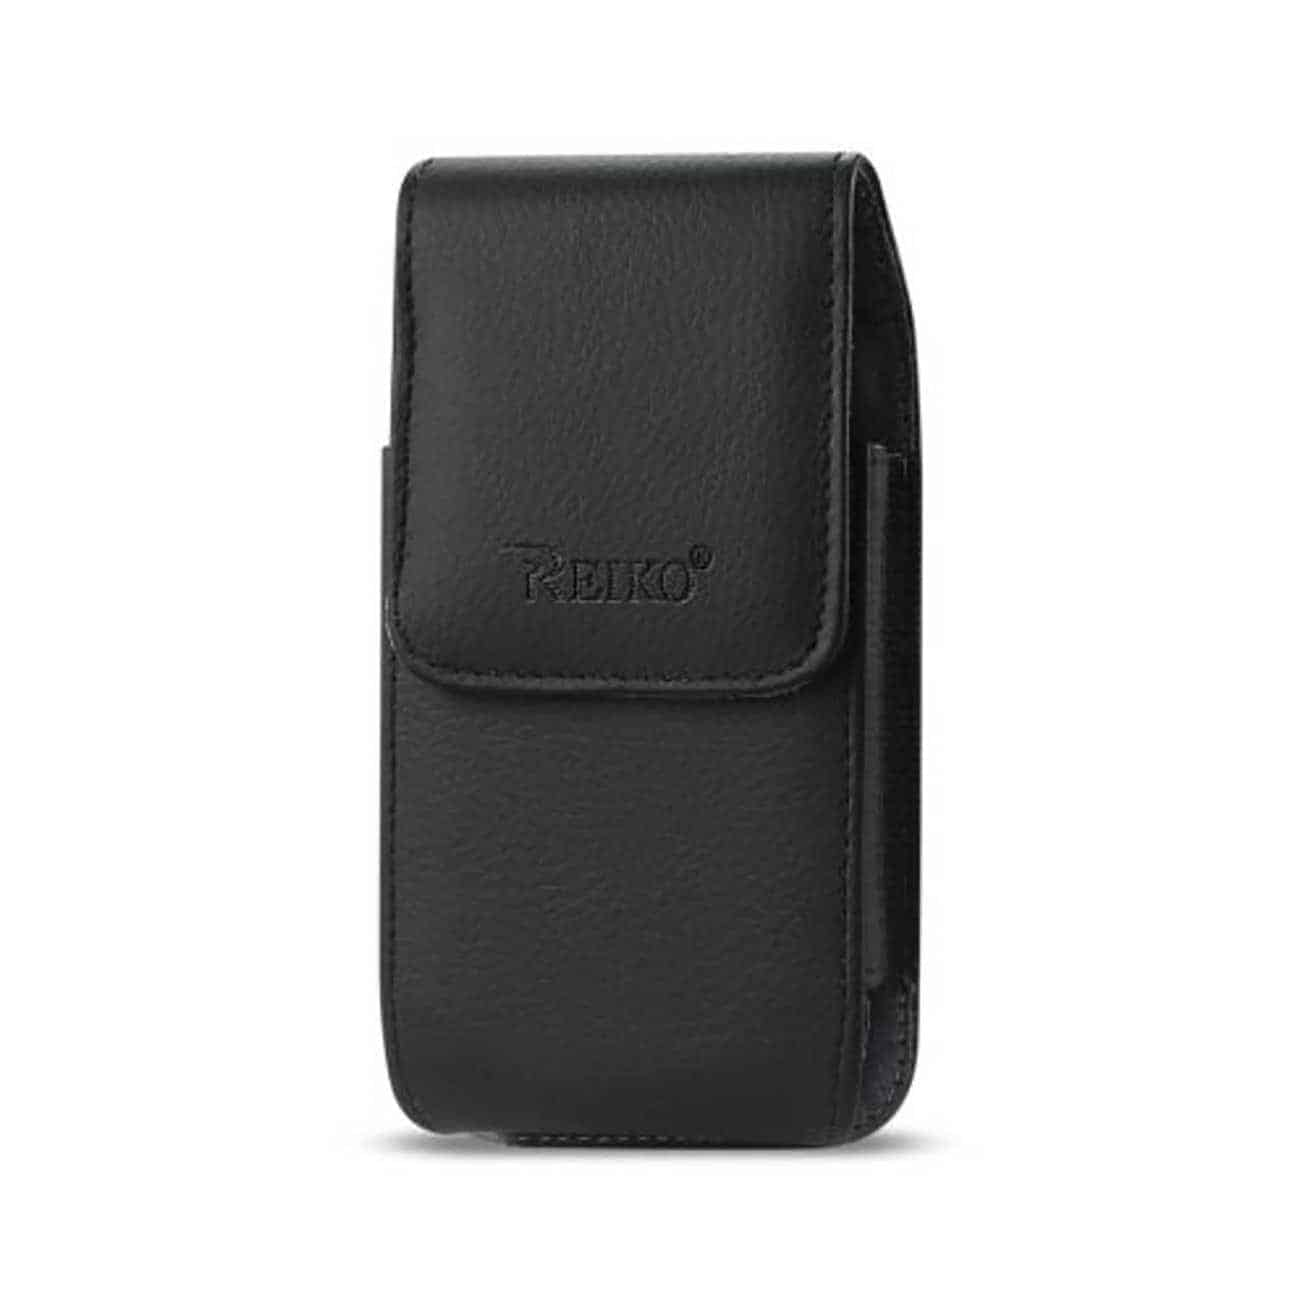 Leather Vertical Pouch With Embossed  Logo And Simple Design In Black (5.8X3.0X0.7 Inches)